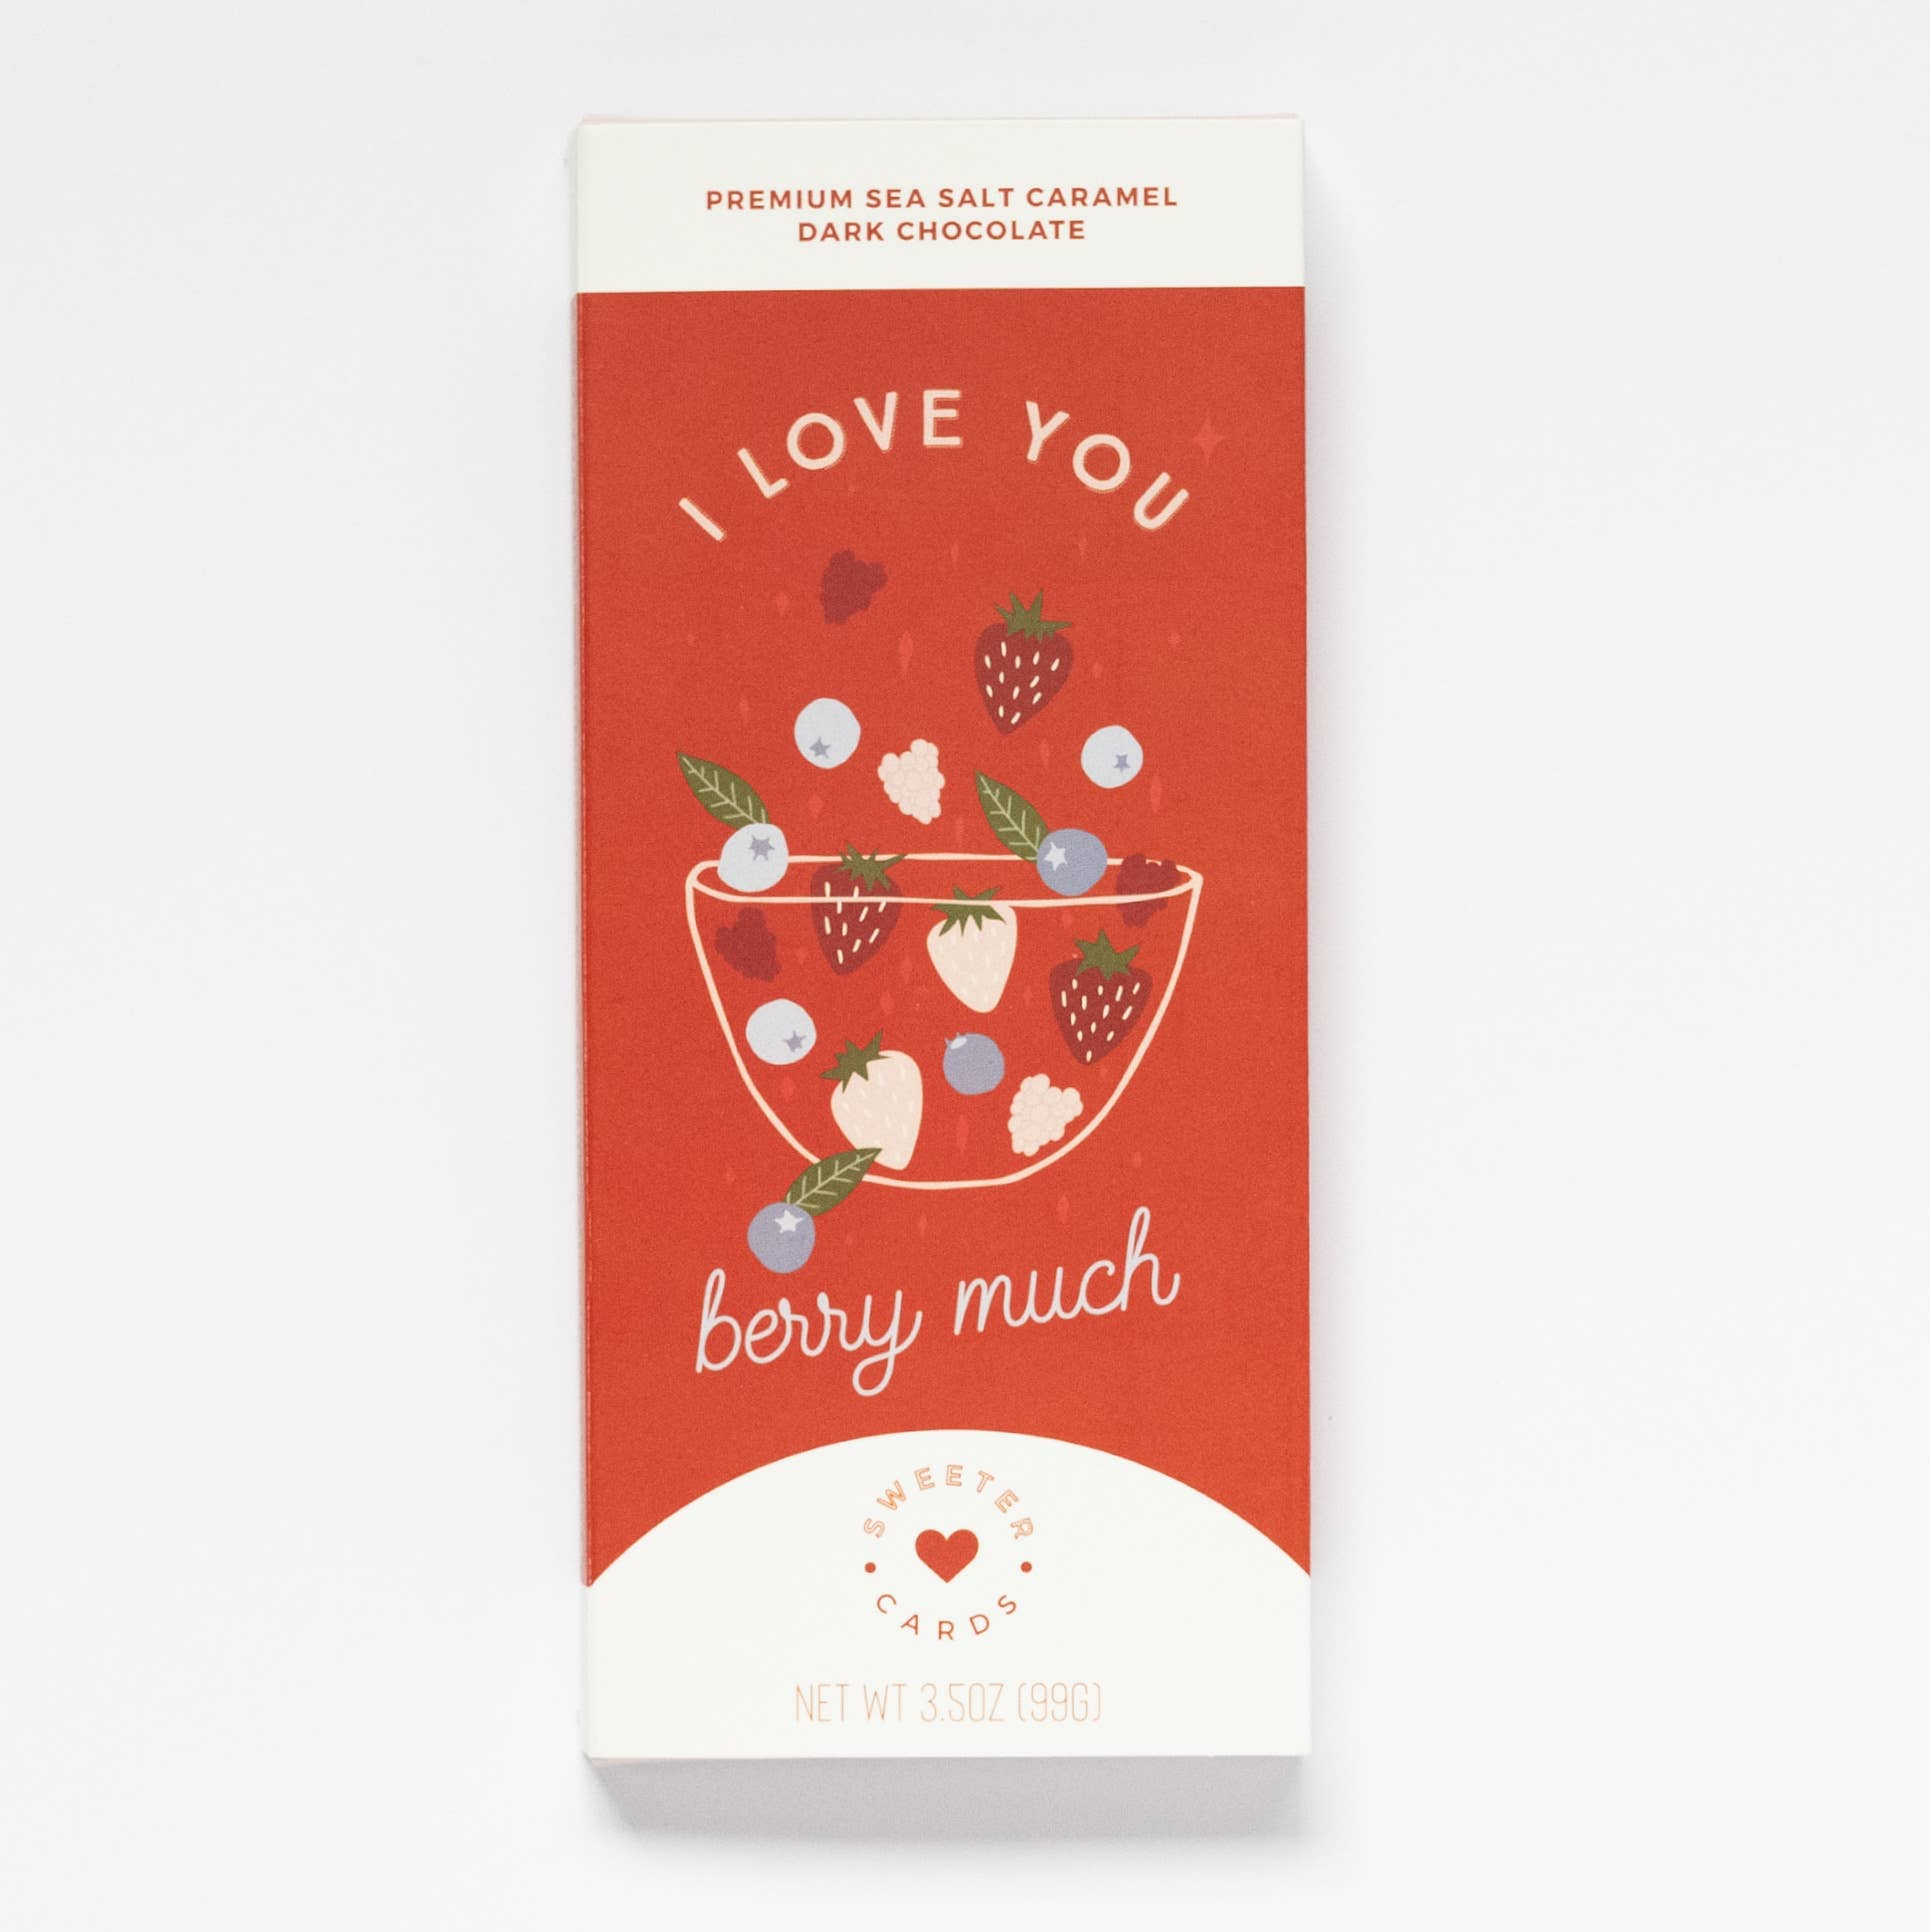 I Love You Card & Chocolate Bar in One for Valentine's Day